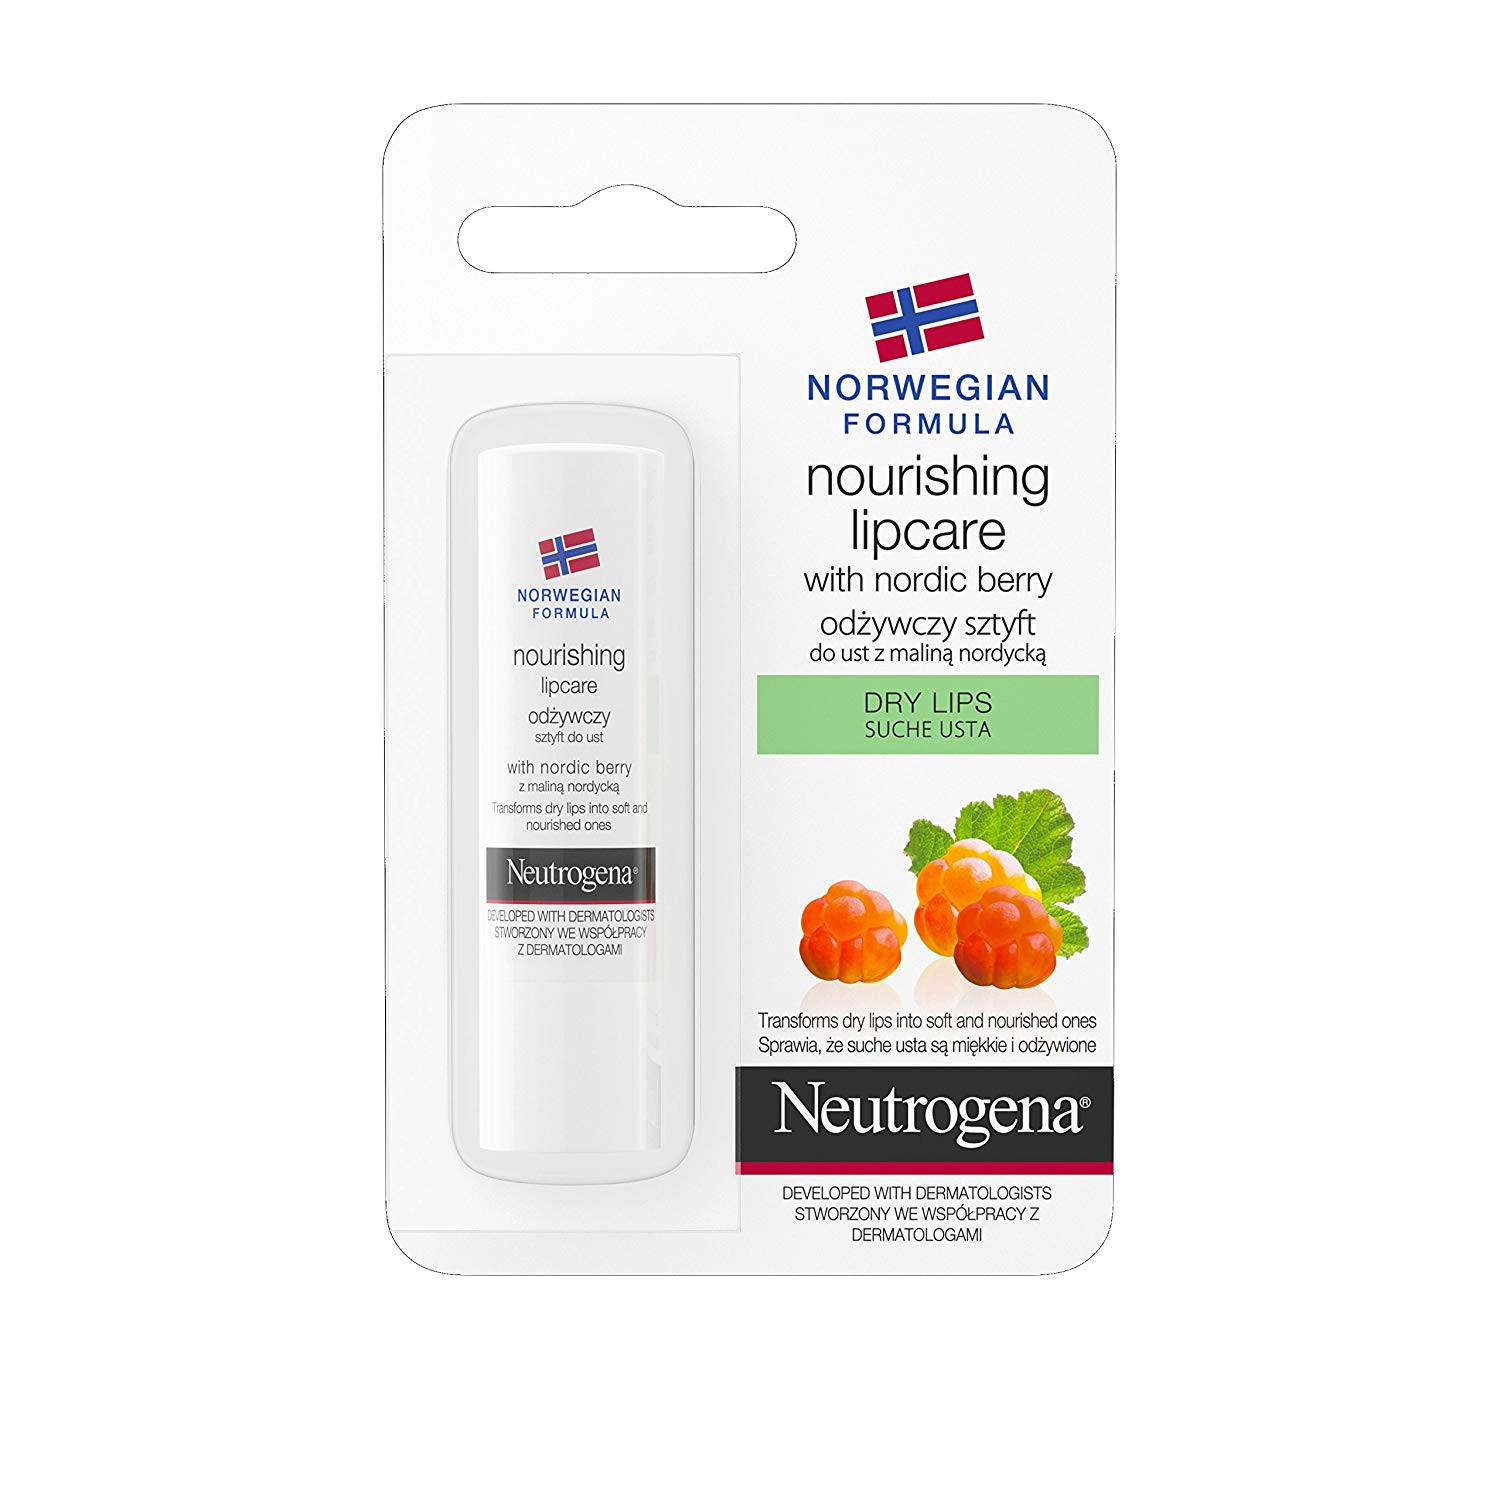 Neutrogena Norwegian Formula Nourishing Lip Care with Nordic Berry Dry Lips 4 8g Amazon Beauty